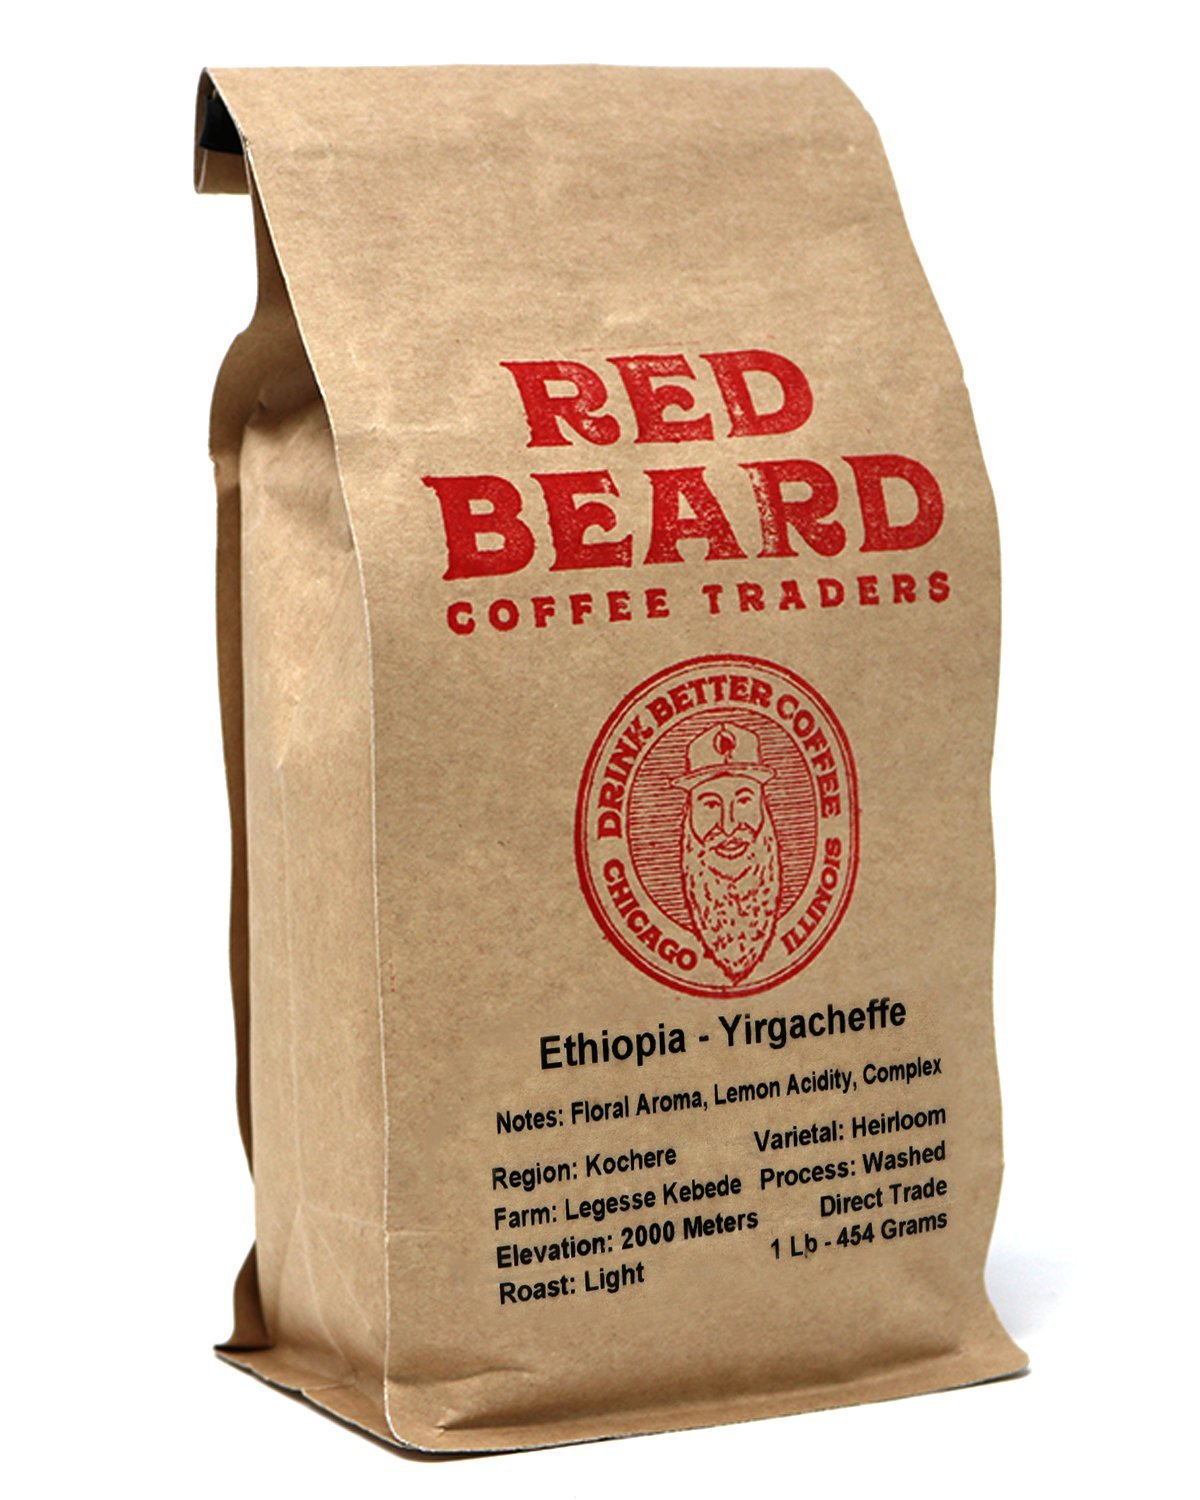 Red Beard Coffee Ethiopia Kochere Blend Light Roast 1lb for a Complex Floral Aroma Lemon Acidity Tea Like Body Cupping